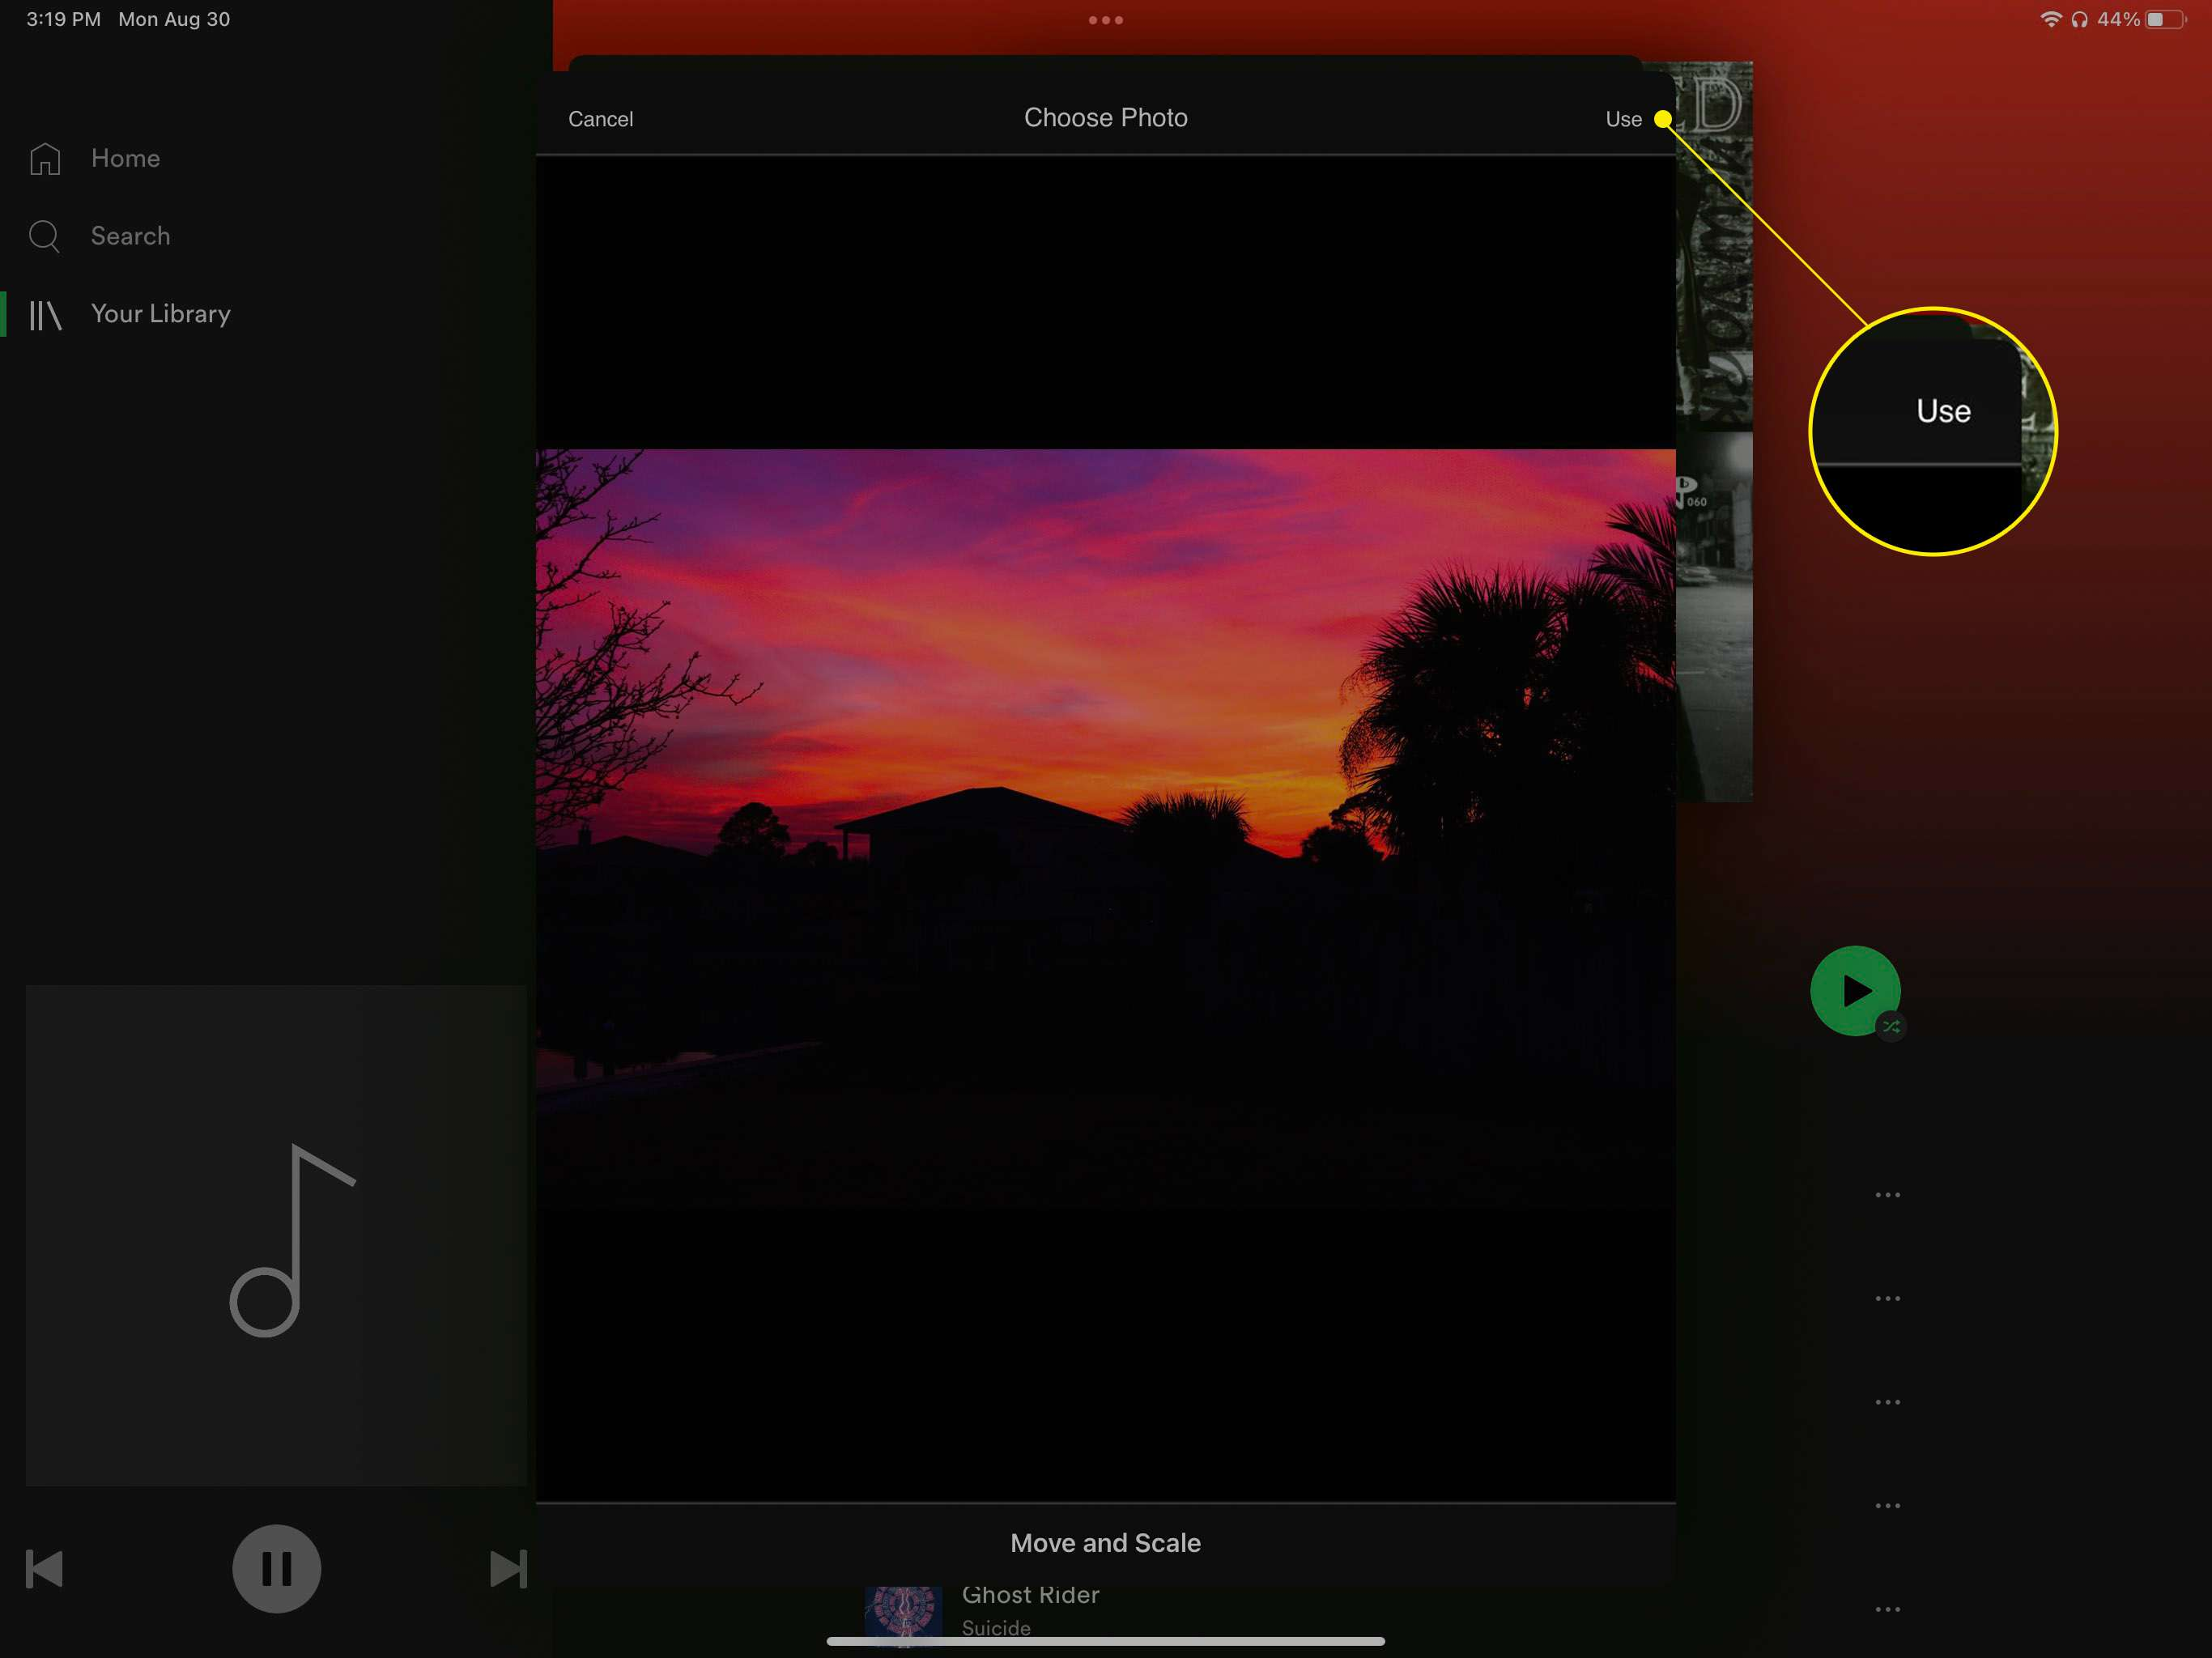 Use highlighted in Spotify playlist picture settings.